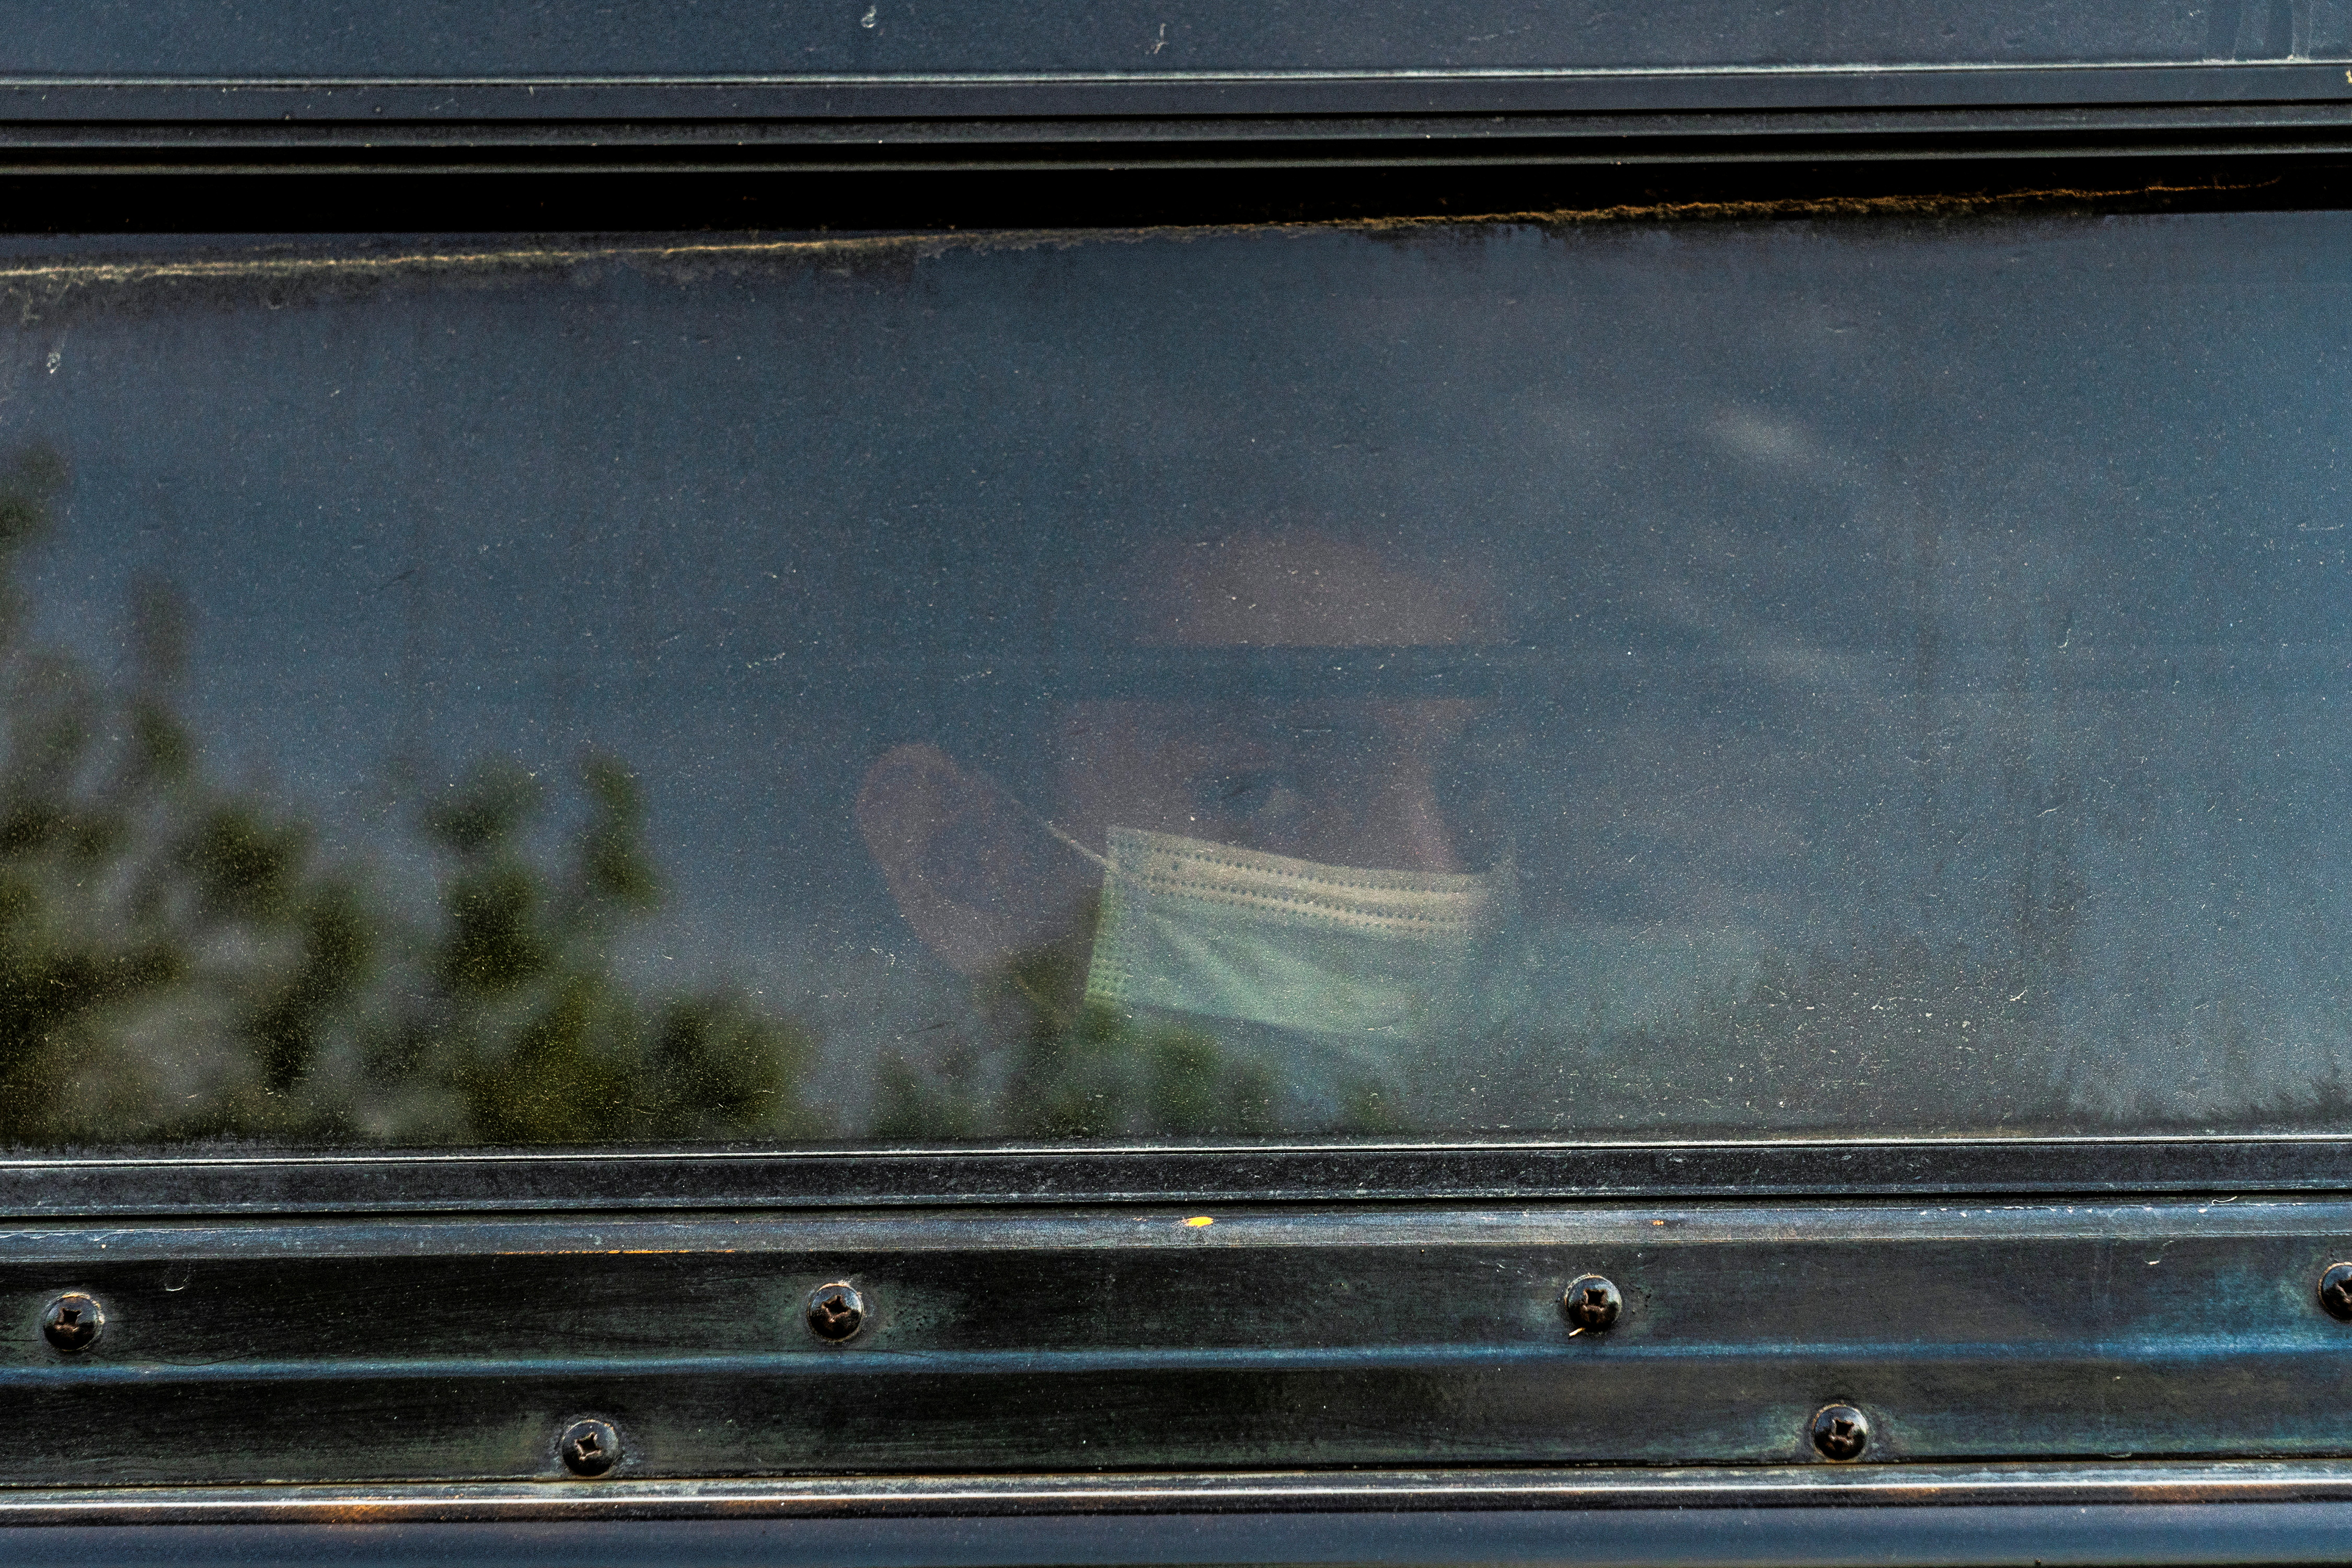 A young asylum-seeking migrant looks out from the window on a bus while waiting to be transported by the U.S. Border Patrols after crossing the Rio Grande river into the United States from Mexico in La Joya, Texas, U.S., March 26, 2021.  REUTERS/Go Nakamura